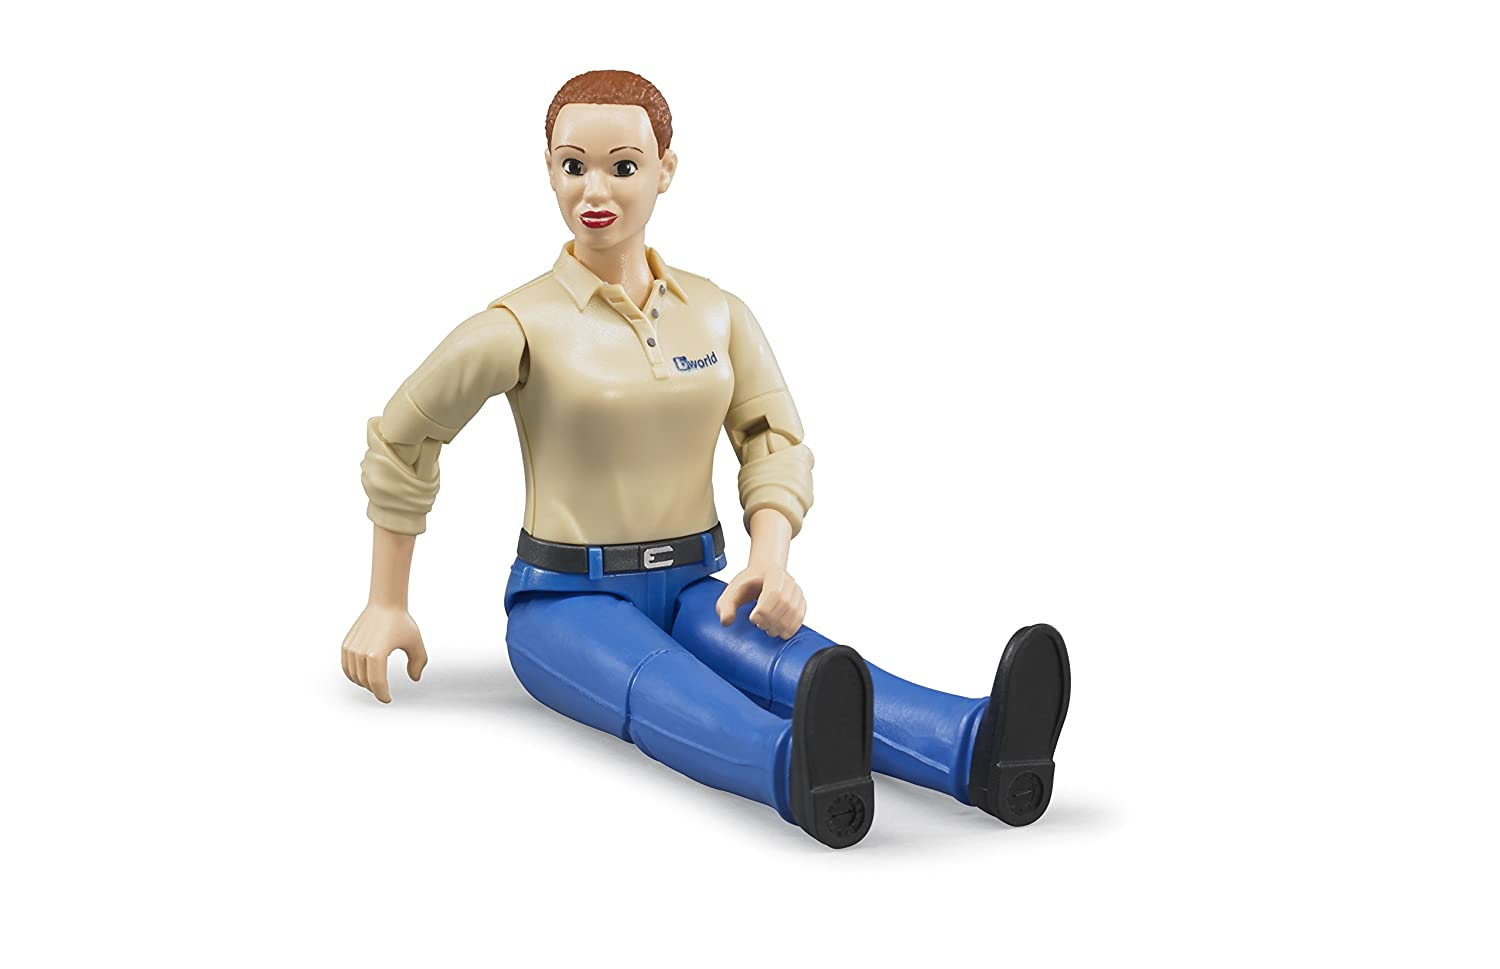 Bruder Woman Dark Skin Toy Figure with Turquoise Jeans